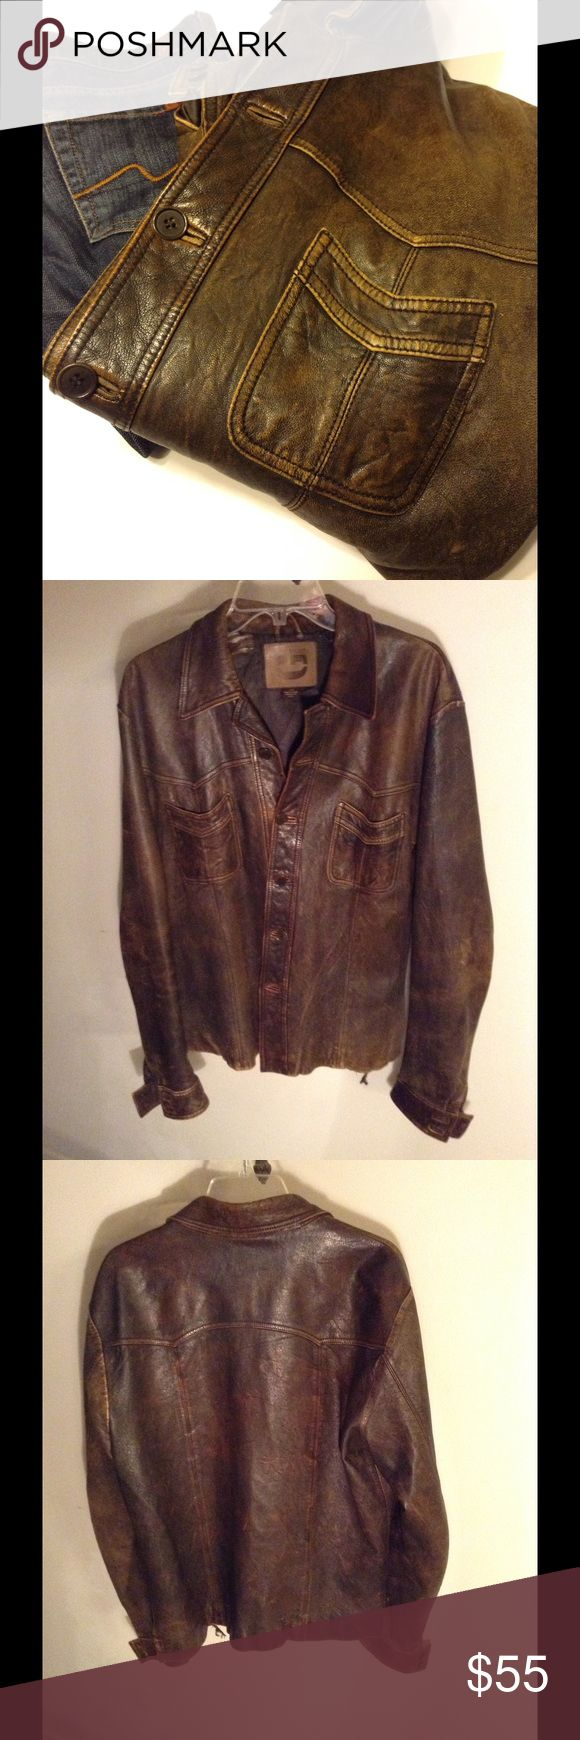 Men's (or Woman's) Leather Jacket 100 % Soft Distressed Leather, Lining Torn in a Few Places - not noticeable when wearing. G Brand Jackets & Coats